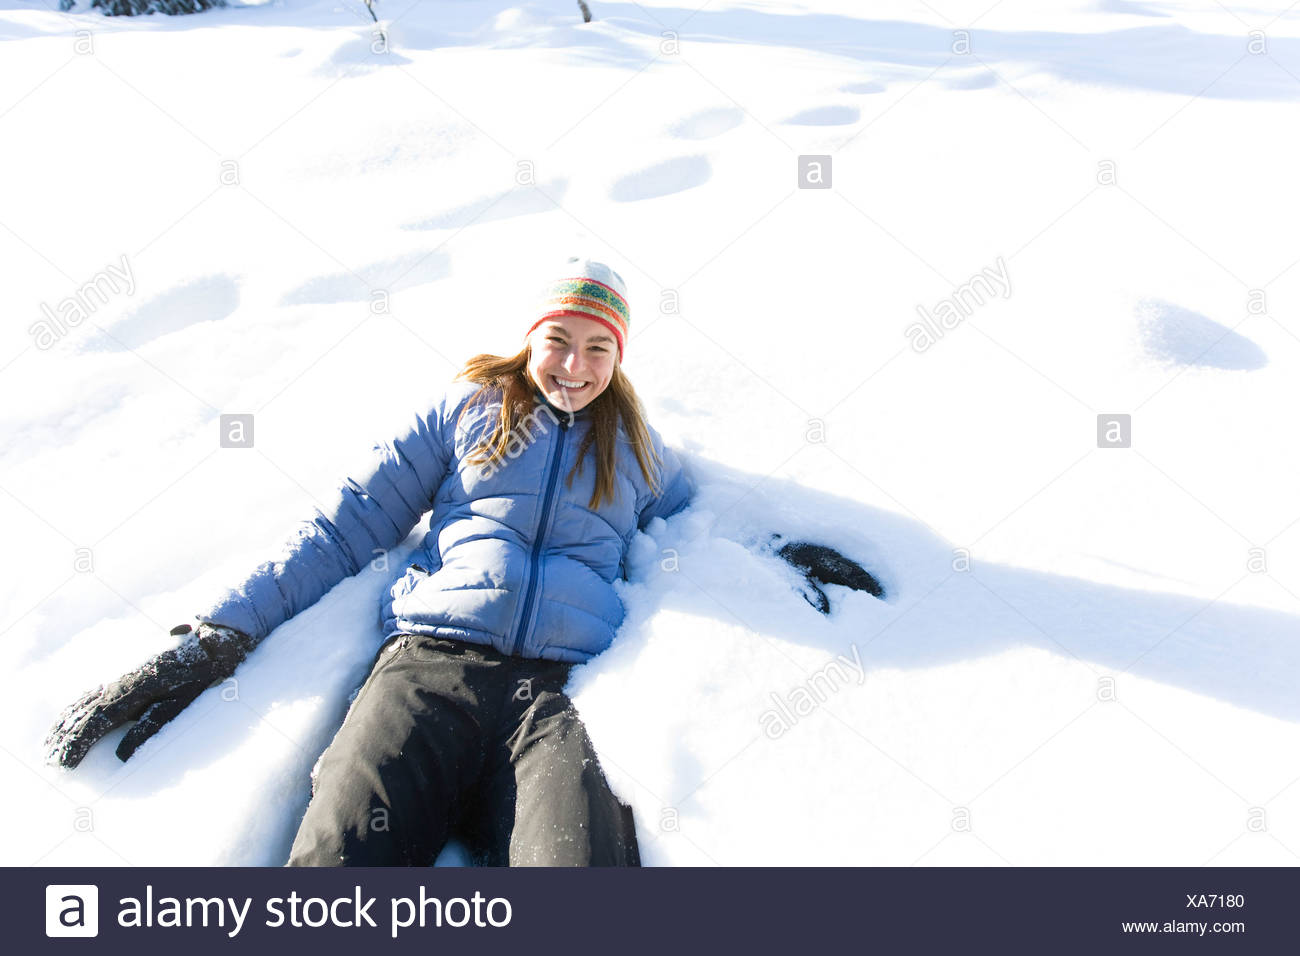 Young woman on snowshoes plays in snow near Homer, Alaska during winter. Stock Photo